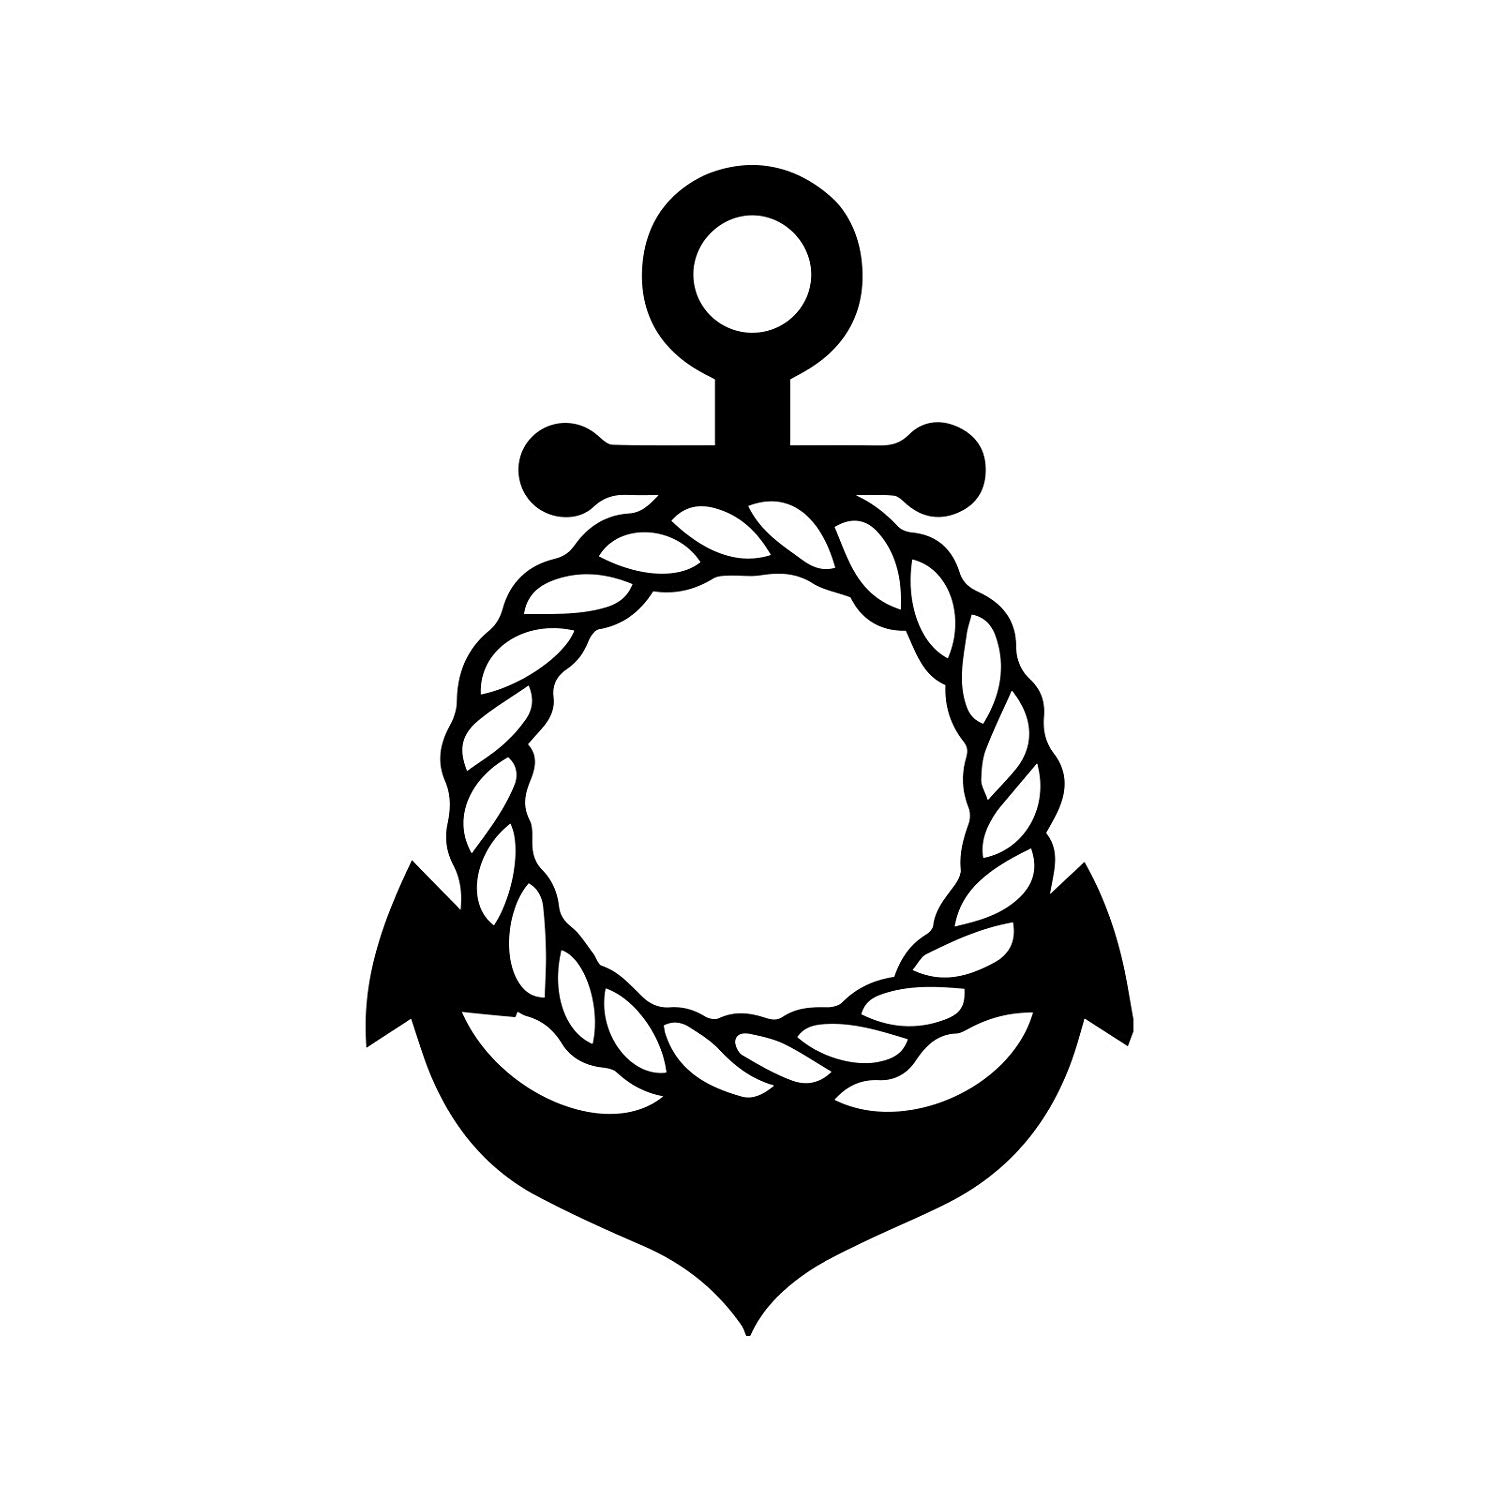 Amazon.com: Bargain Max Decals Anchor Rope Circle Decal.